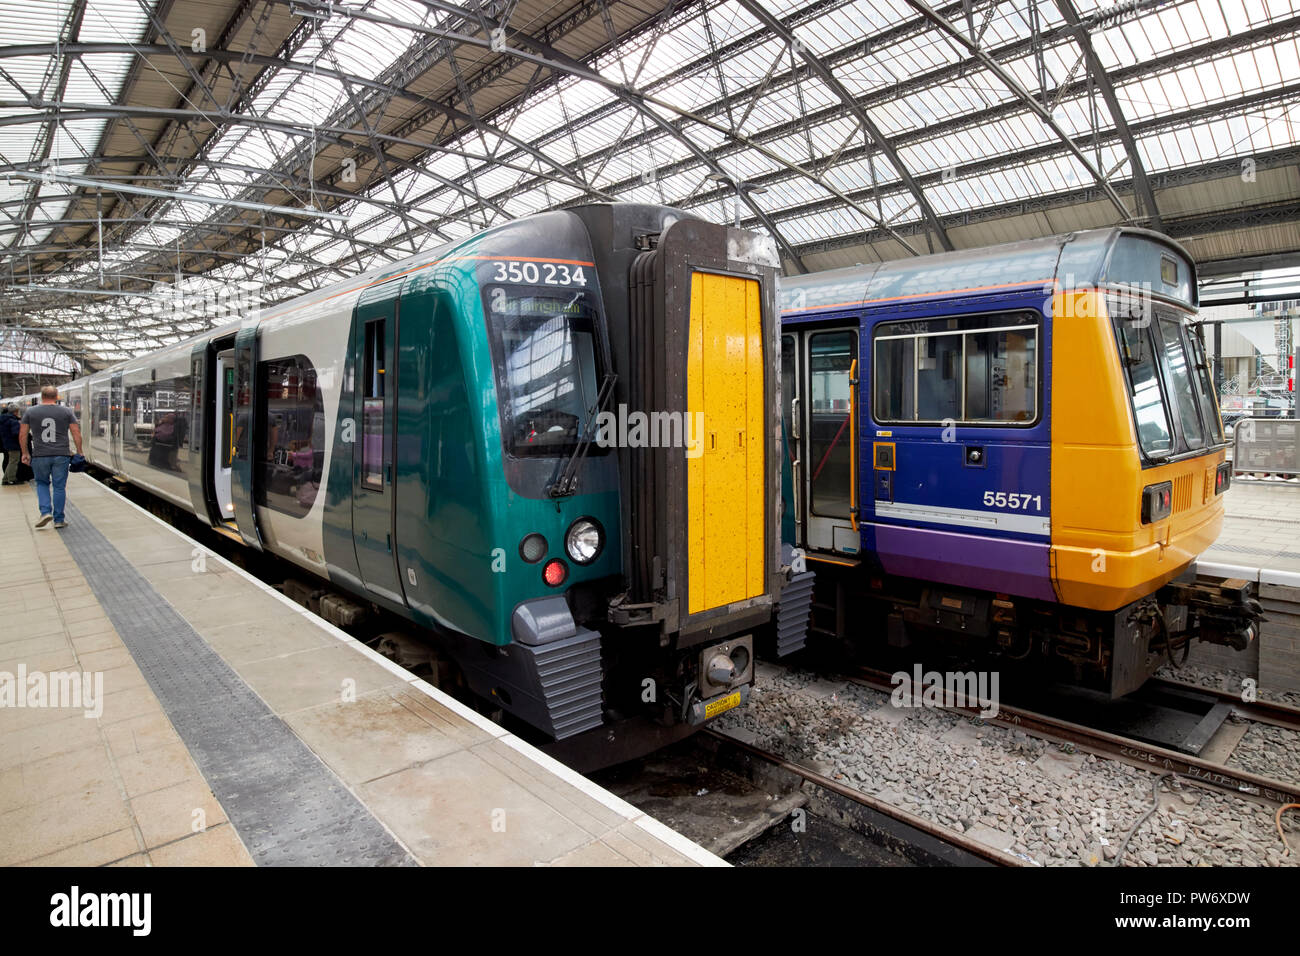 Northern Rail Stock Photos & Northern Rail Stock Images - Alamy